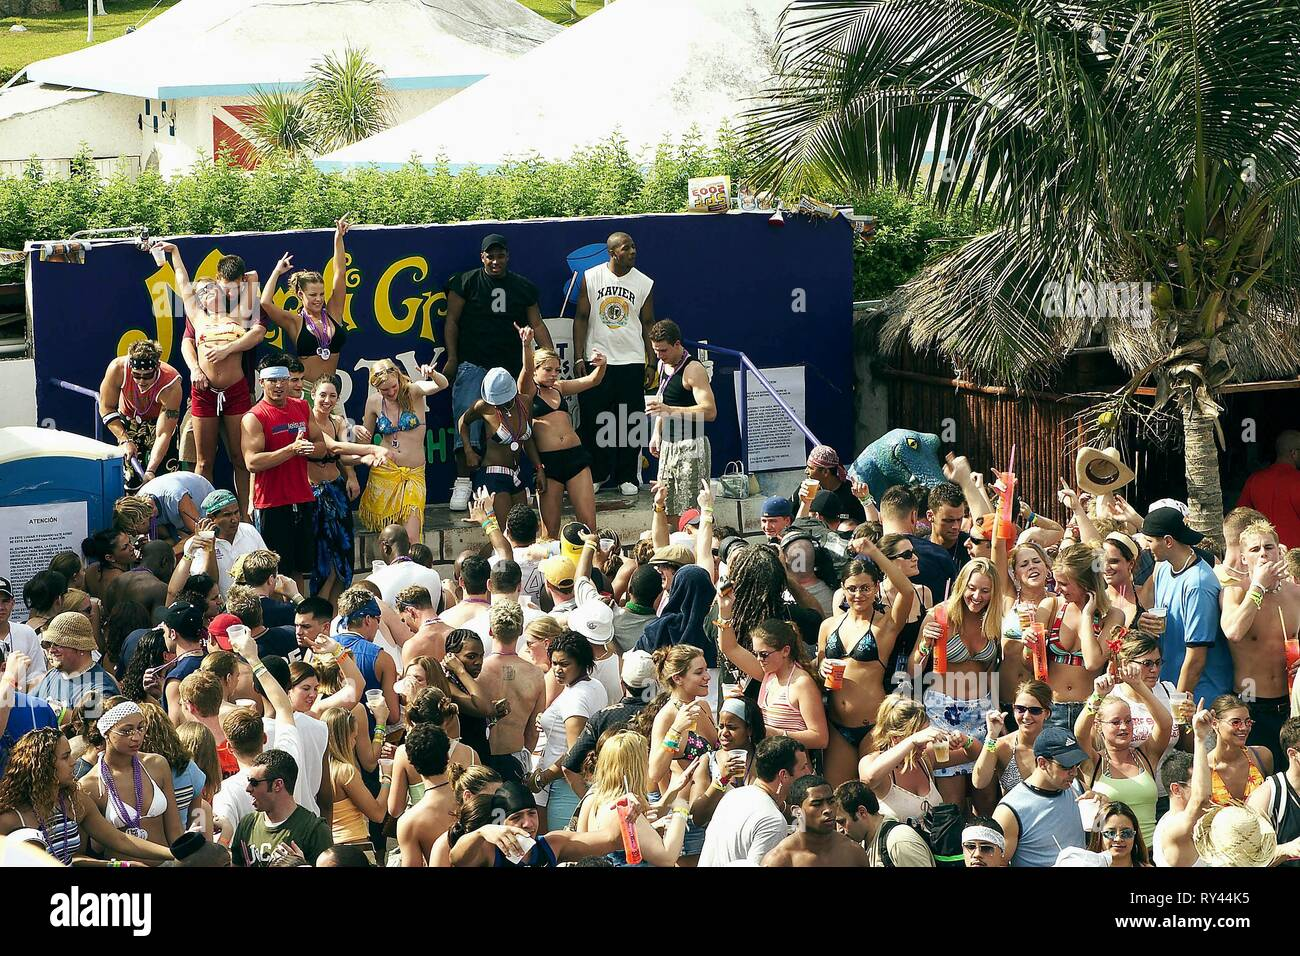 MARDI GRAS THEMED PARTY, THE REAL CANCUN, 2003 - Stock Image